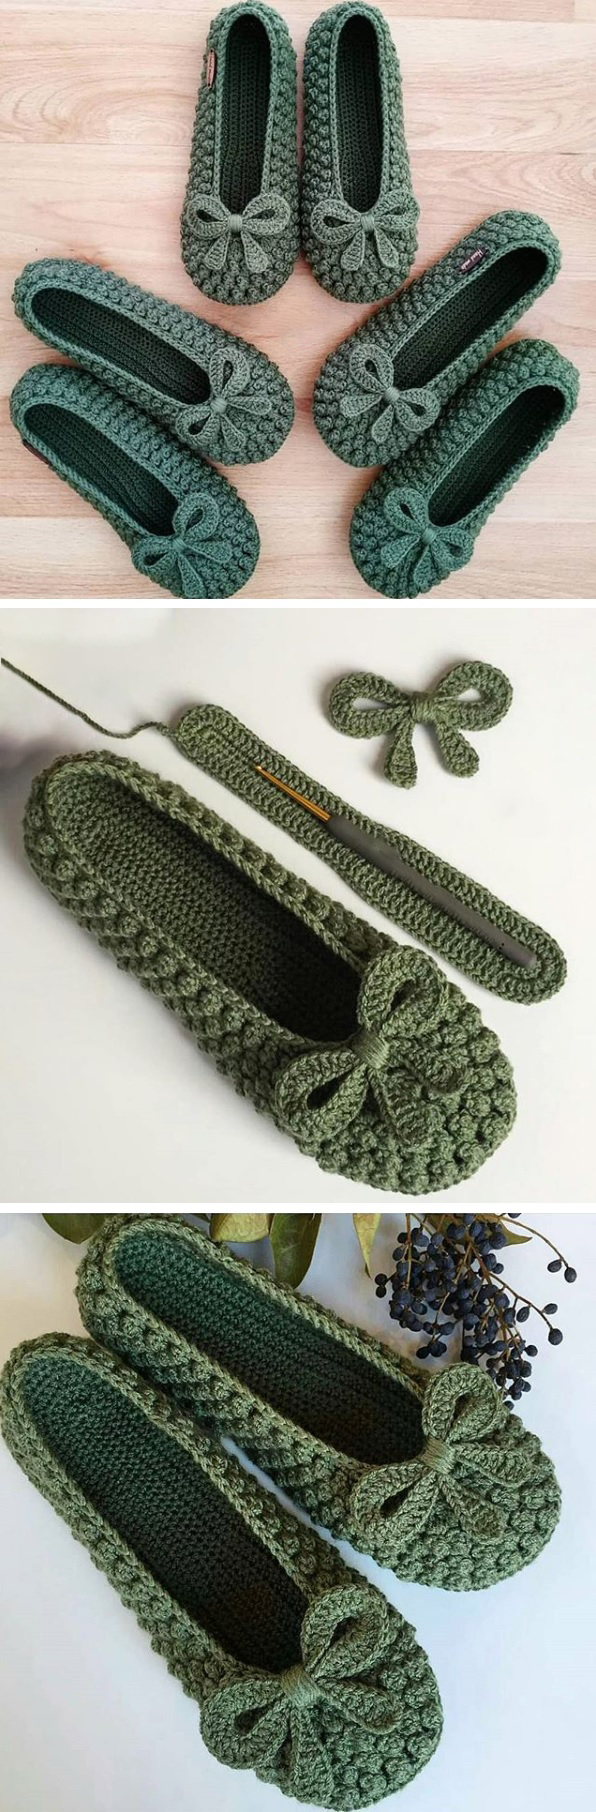 Slippers in Green(Bow) & Red – Crochet Tutorial #crochettutorial